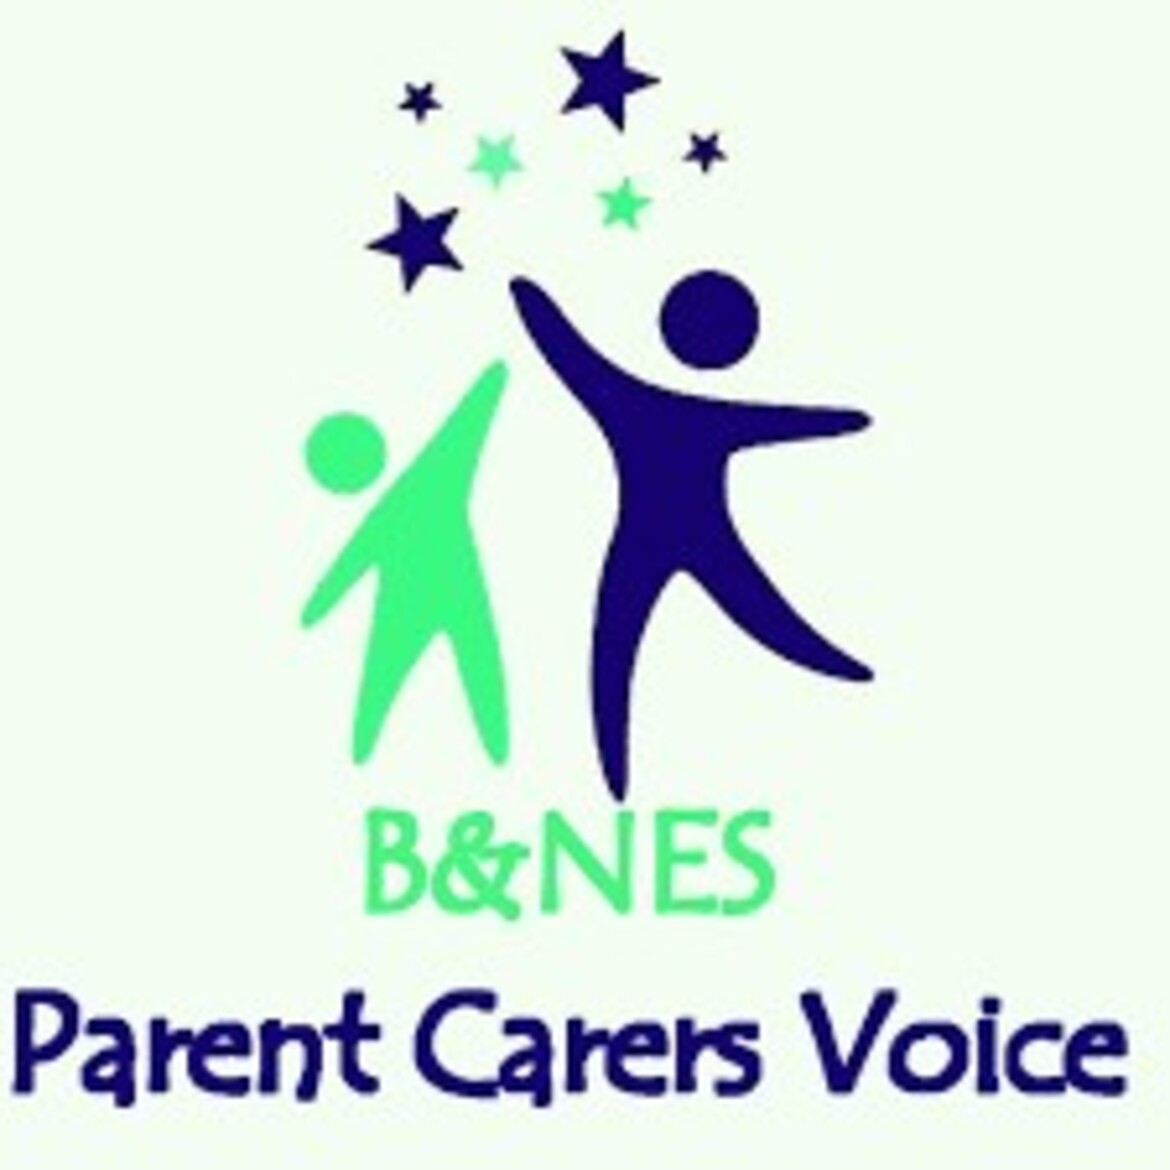 B&NES Parent Carers' Voice FOCUS Forward virtual sessions for parent carers